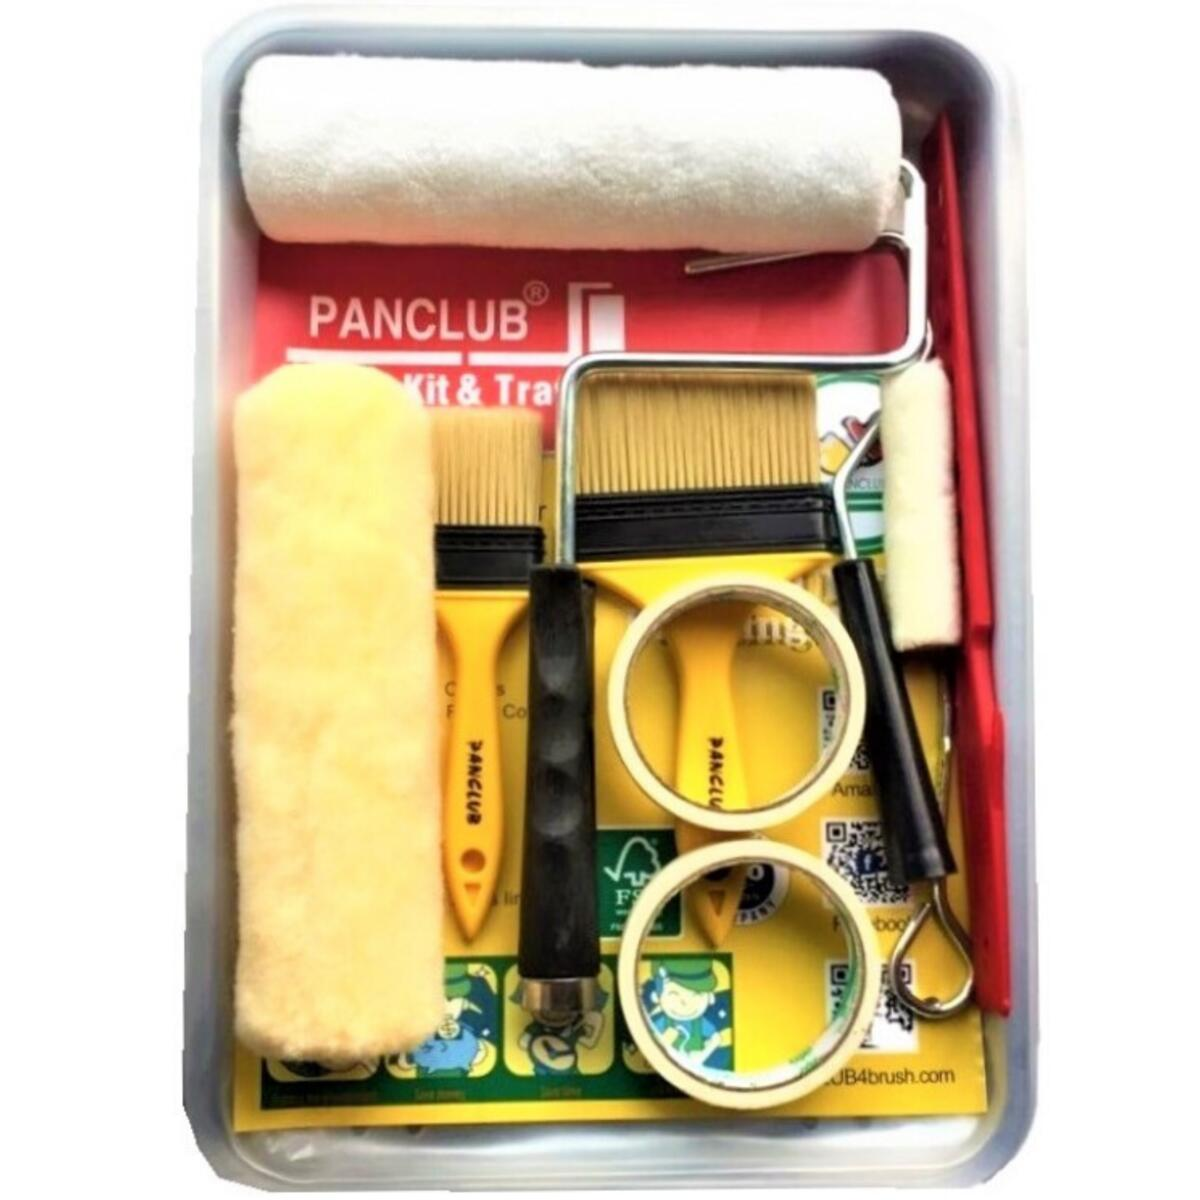 PANCLUB Paint Roller Kit I for DIY I Metal Paint Tray 12 Piece Paint Roller Set I Roller Cover Set, 2 Liner, S Chip Paint Brush, Painter's Tape, Paint Stick, Paint Can Opener